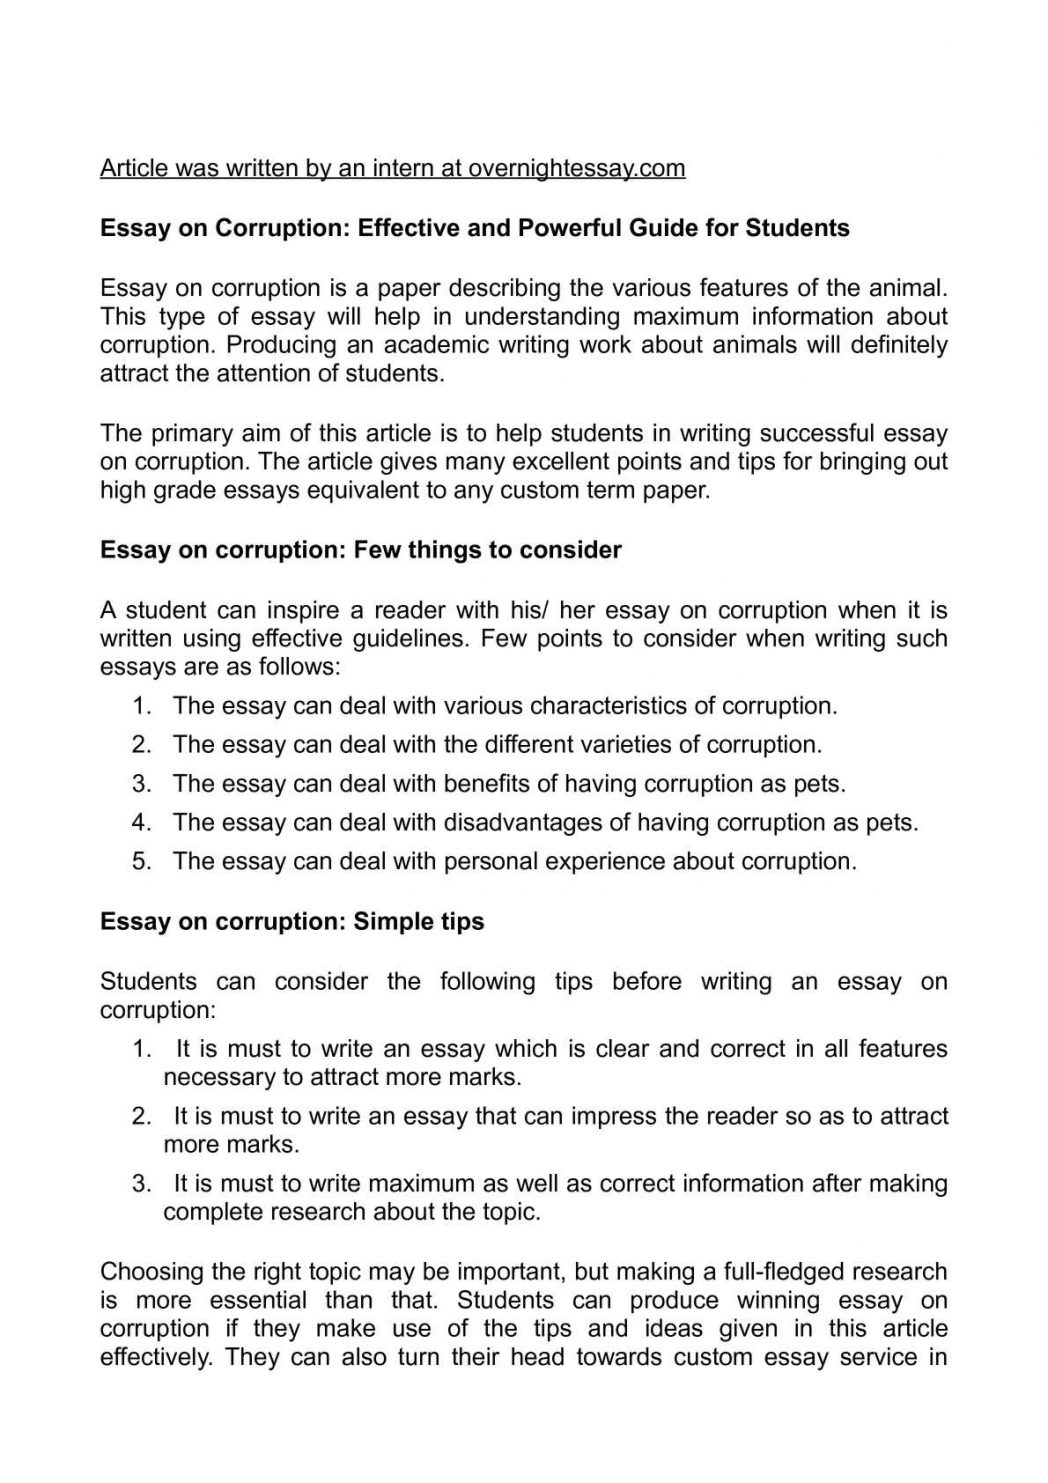 015 How To Write This I Believe Essay Easy Essays Calam Atilde Copy O On Corruption Effective Samples Good Topics Template 1048x1483 Fantastic A What Things Full